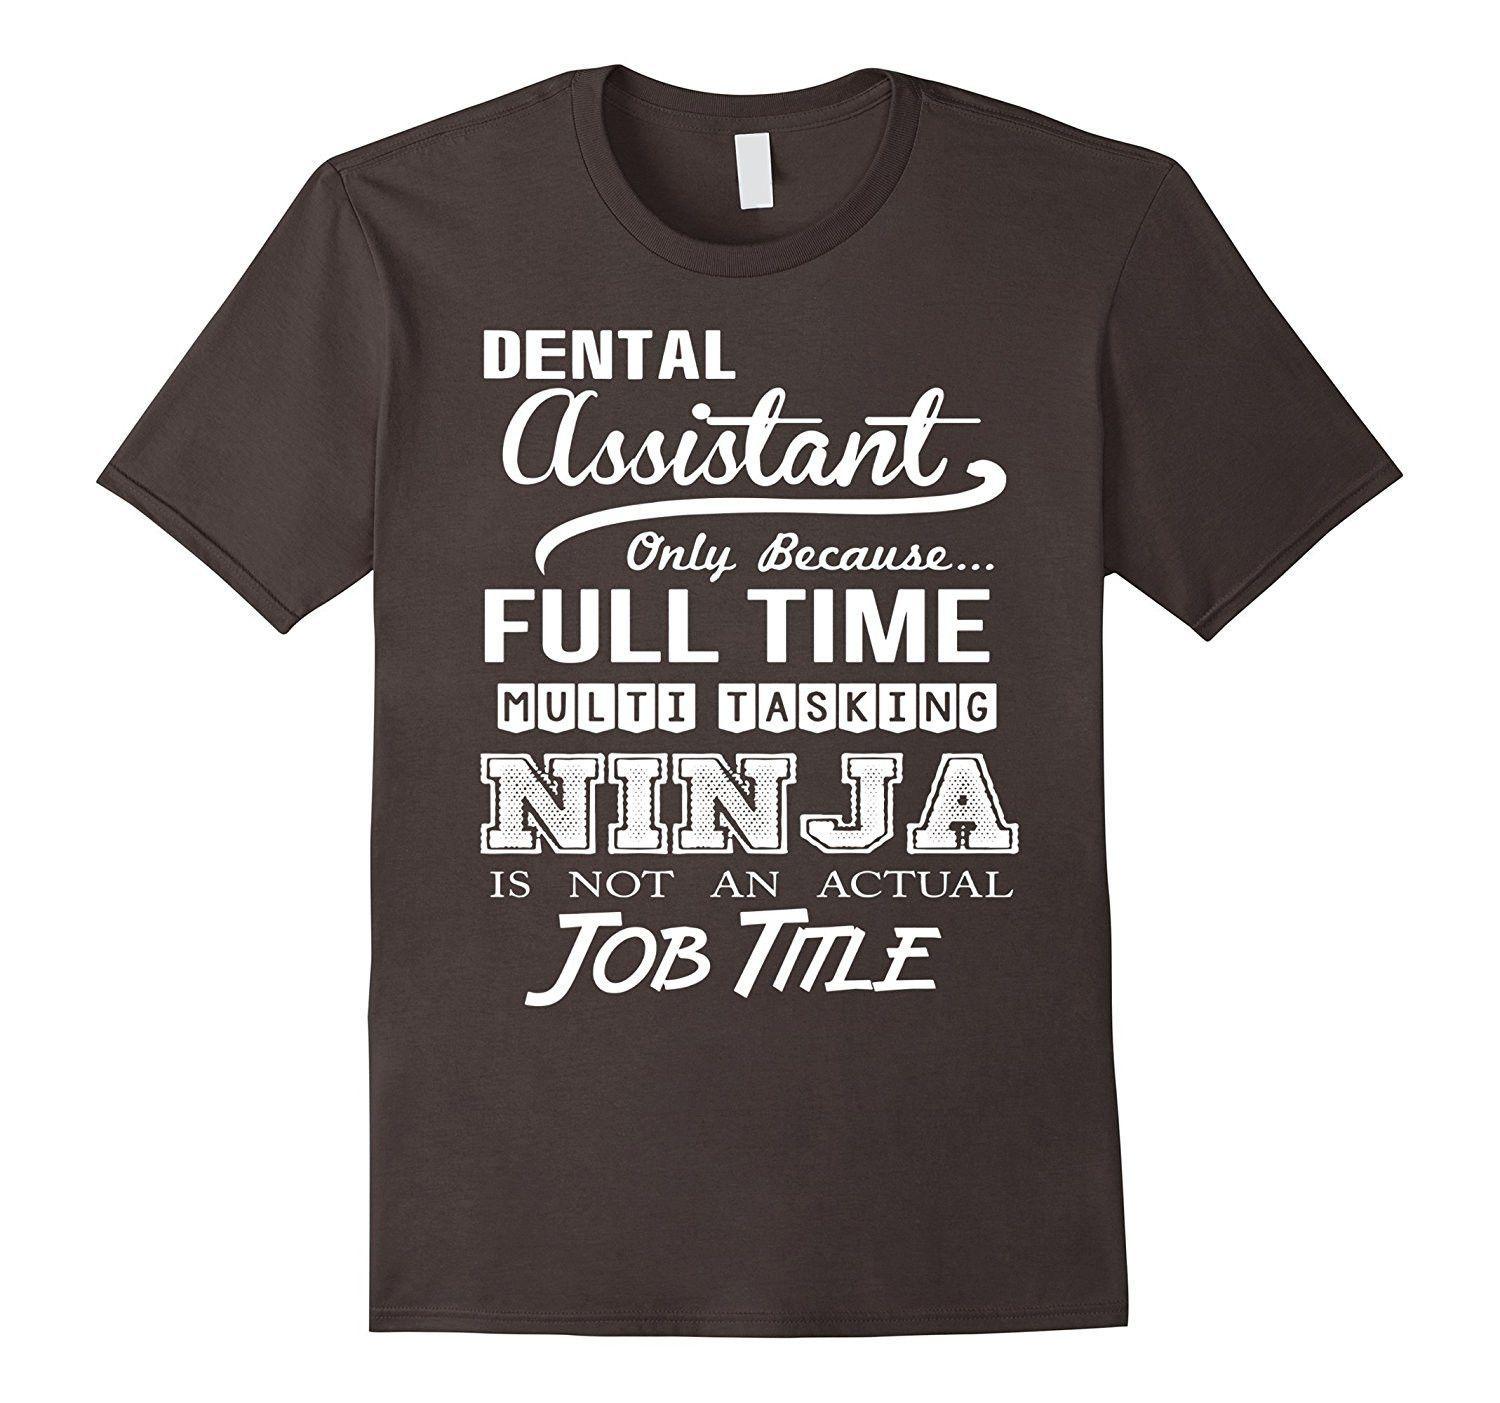 dental assistant job title shirt